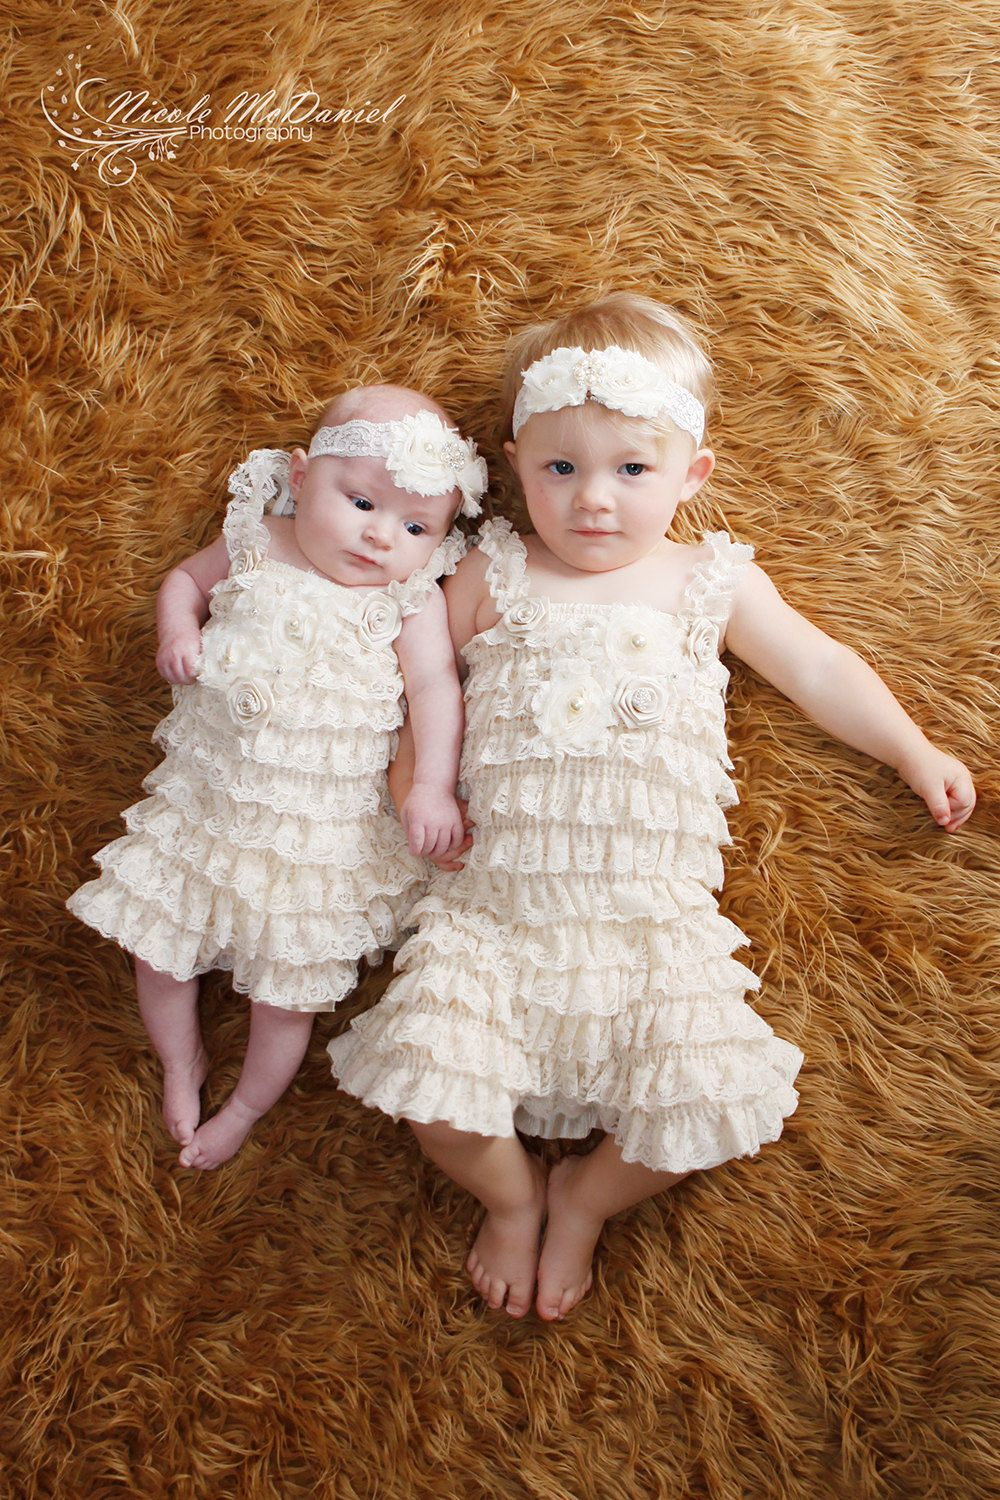 083db78cd9e Omg!!! This is what it s going to be like next month for us!!!!!!!!!!!! Two  little angel girls! Oh my gosh I can t wait!